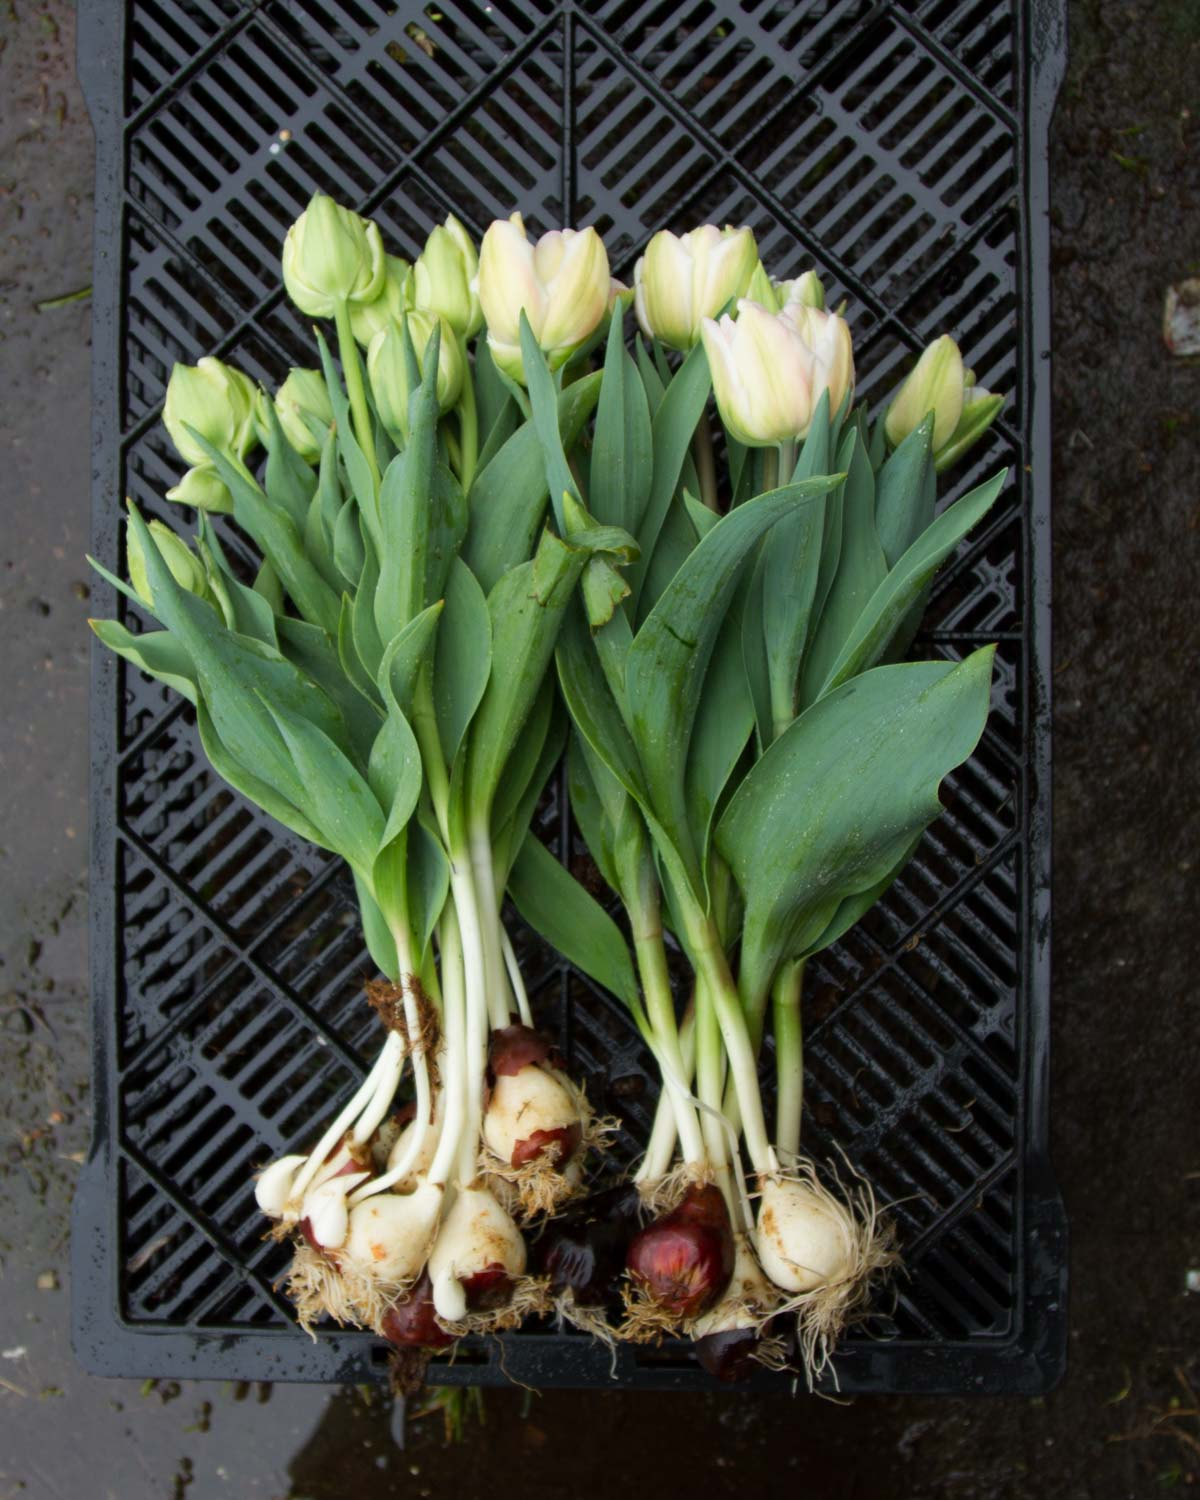 Harvesting Foxtrot Tulips with their bulbs on - for cut flowers